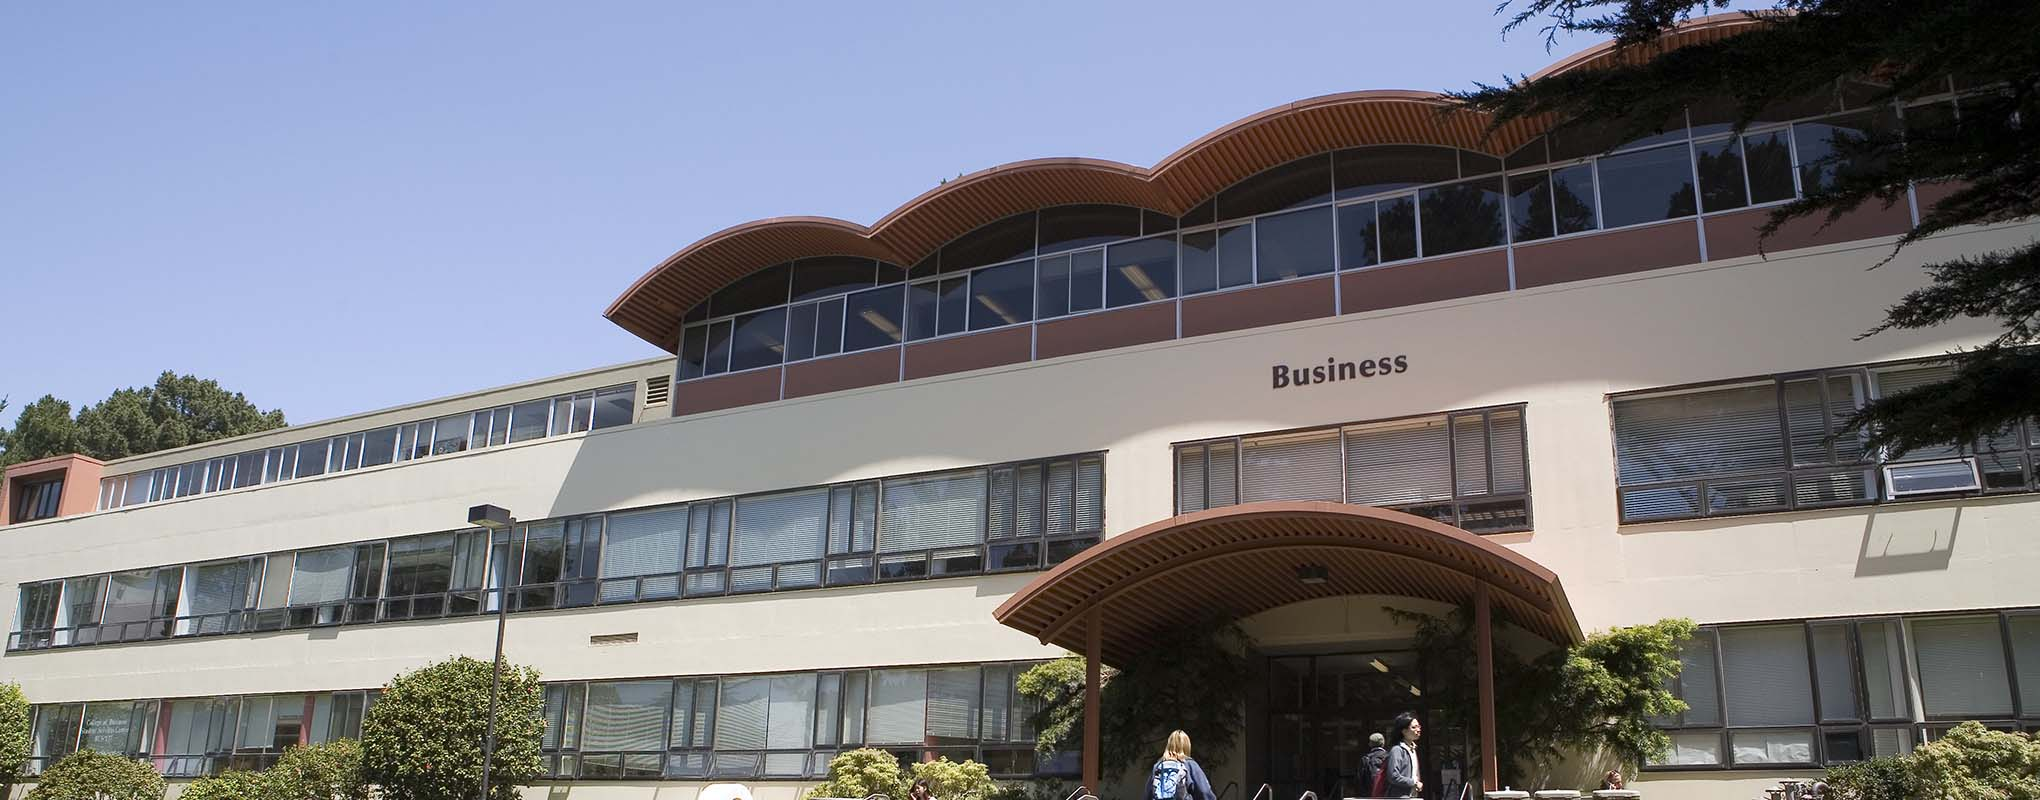 The Business Building at San Francisco State University